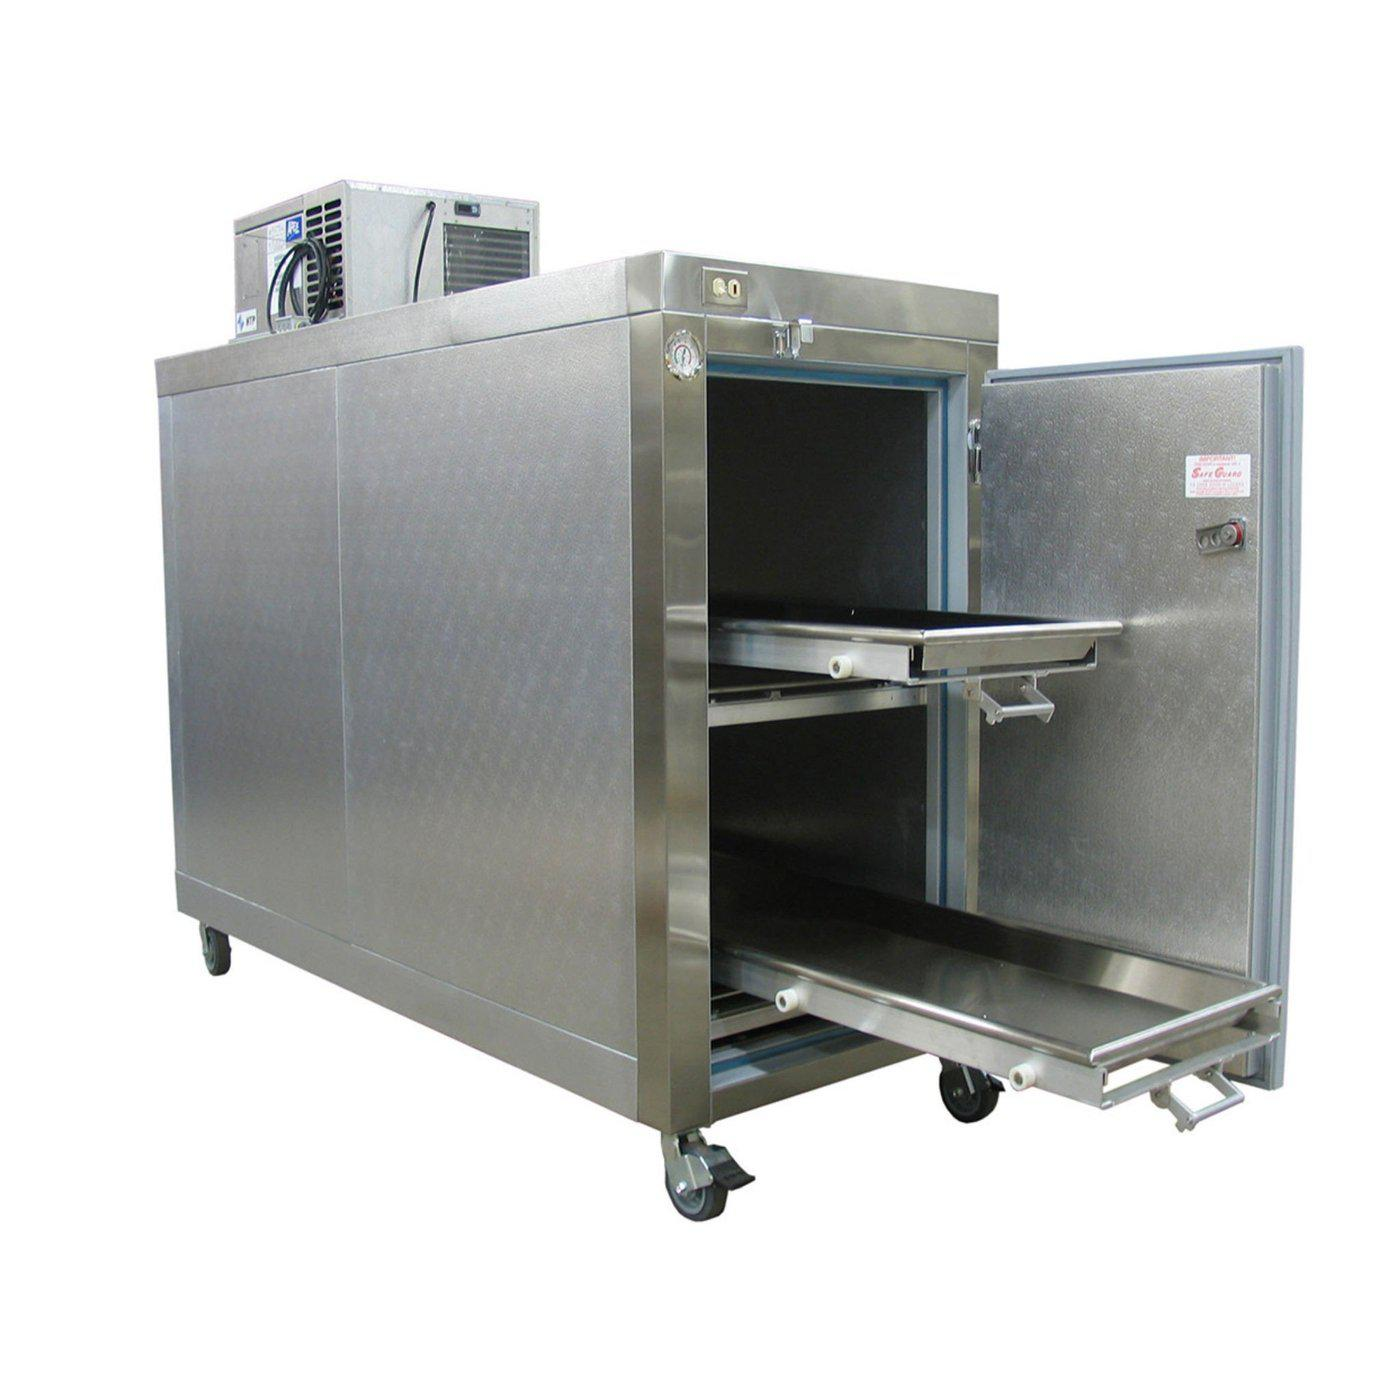 Mortuary Refrigerators & Freezers - Mortech Manufacturing